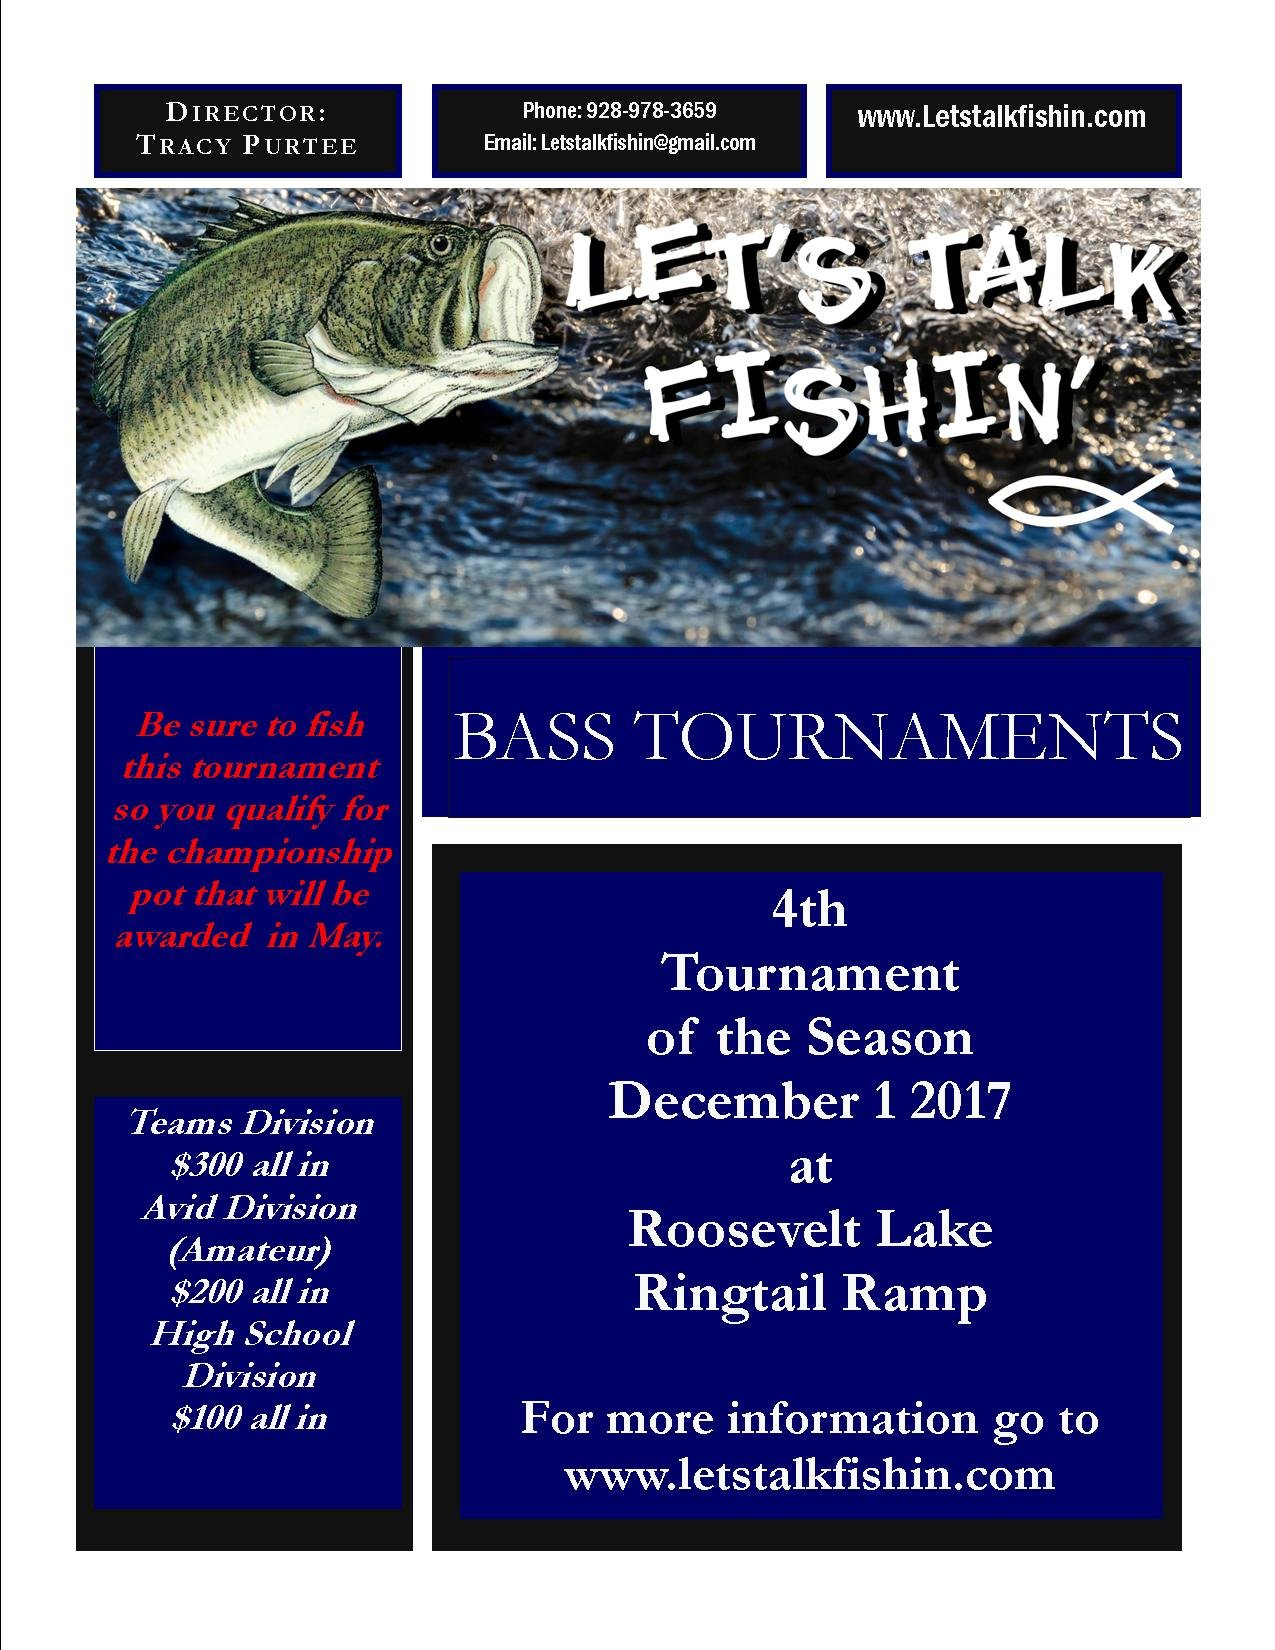 Click image for larger version  Name:4th Tournament.jpg Views:1551 Size:285.4 KB ID:96770